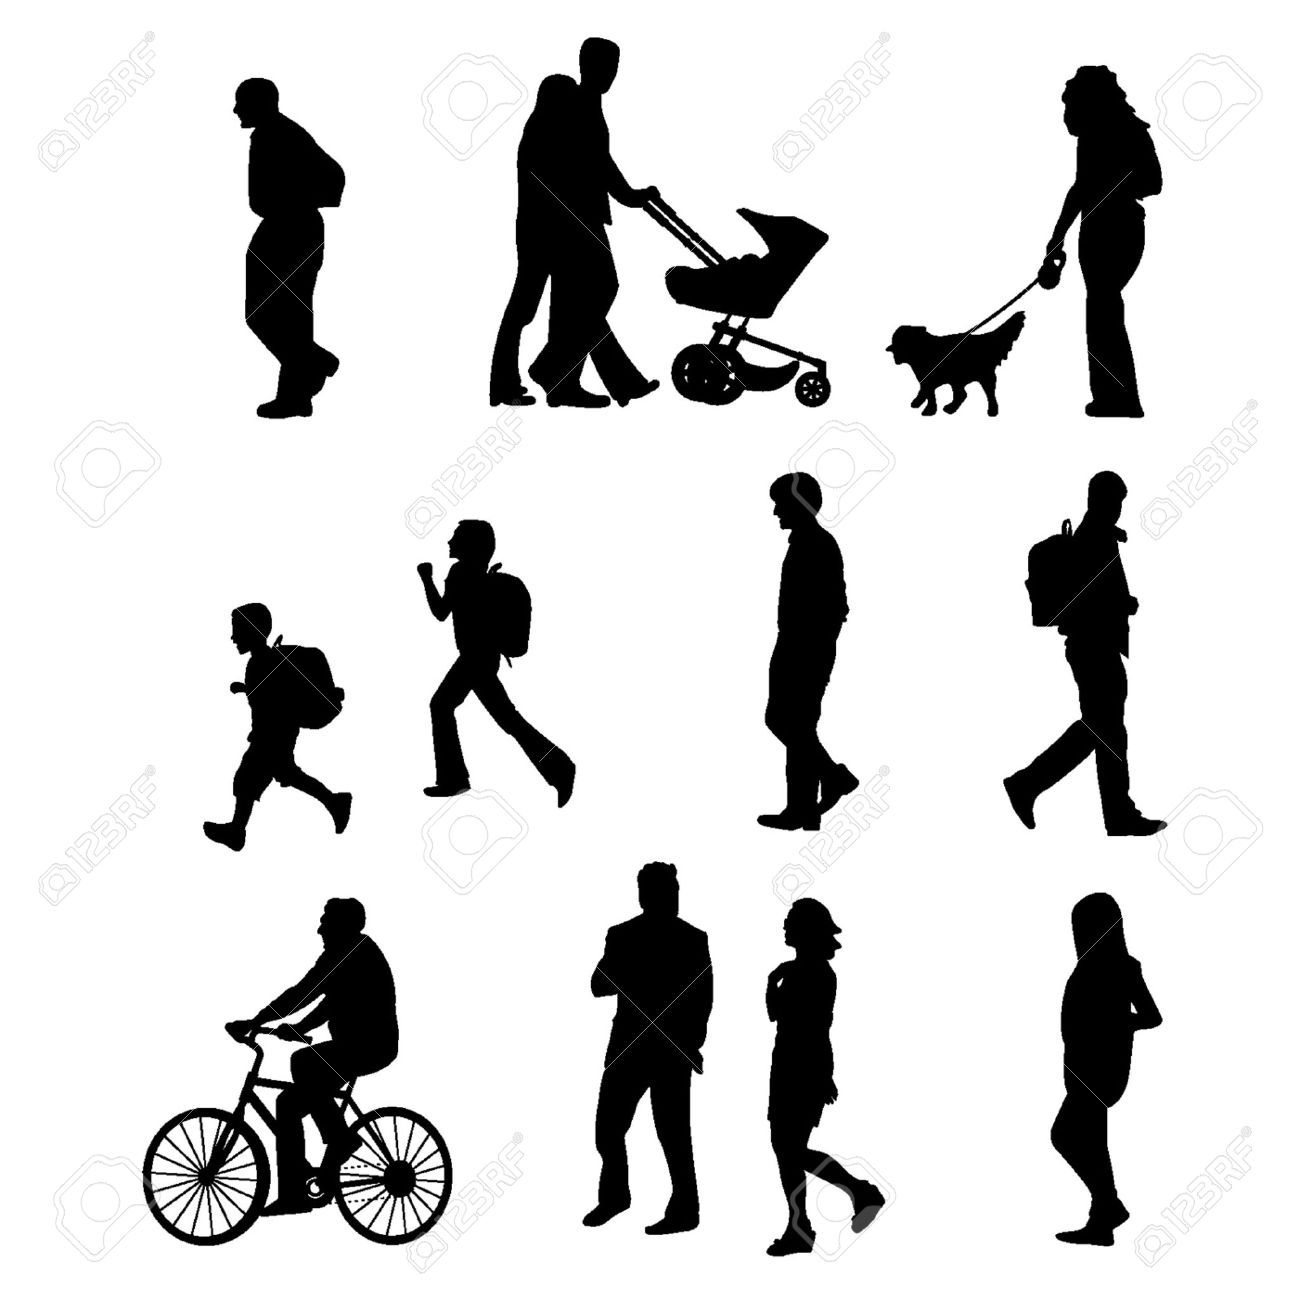 Image result for people walking cliparts cities project